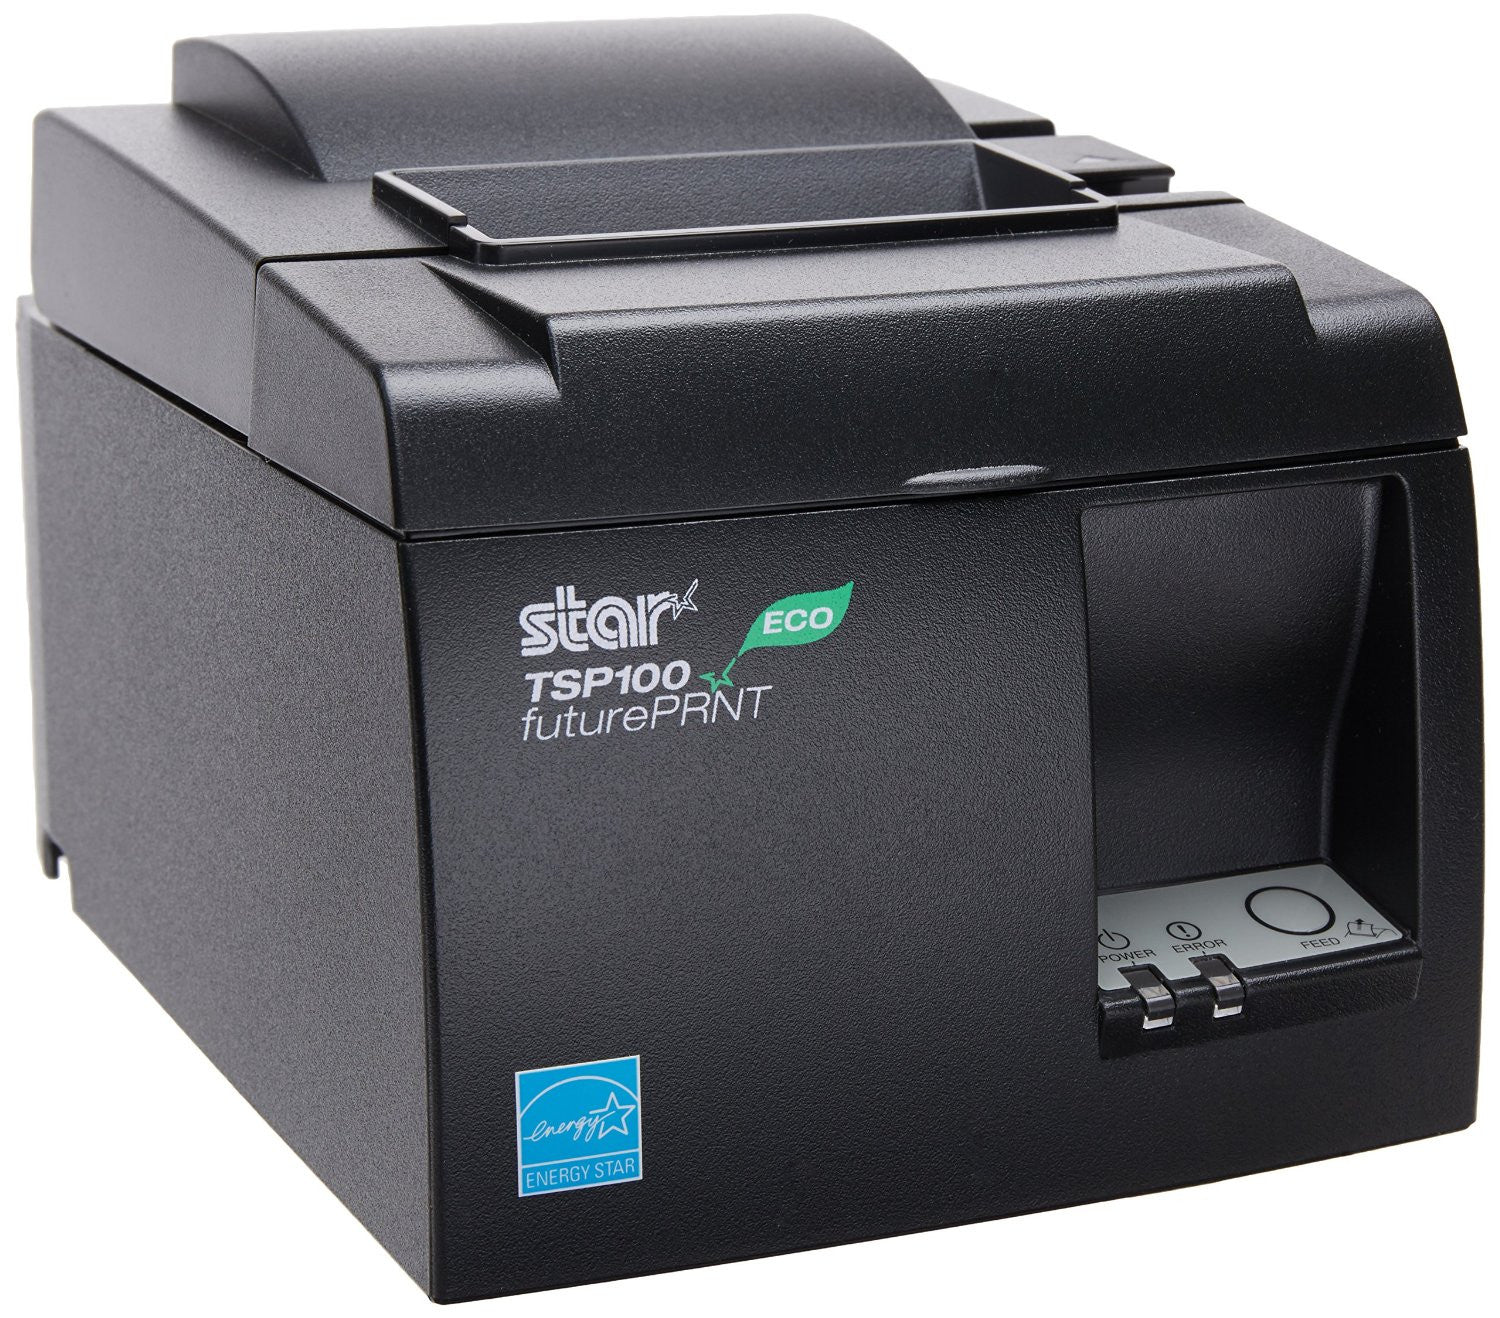 Square POS Receipt Printer Star Micronics 39464011 TSP143IIU USB Thermal Receipt Printer